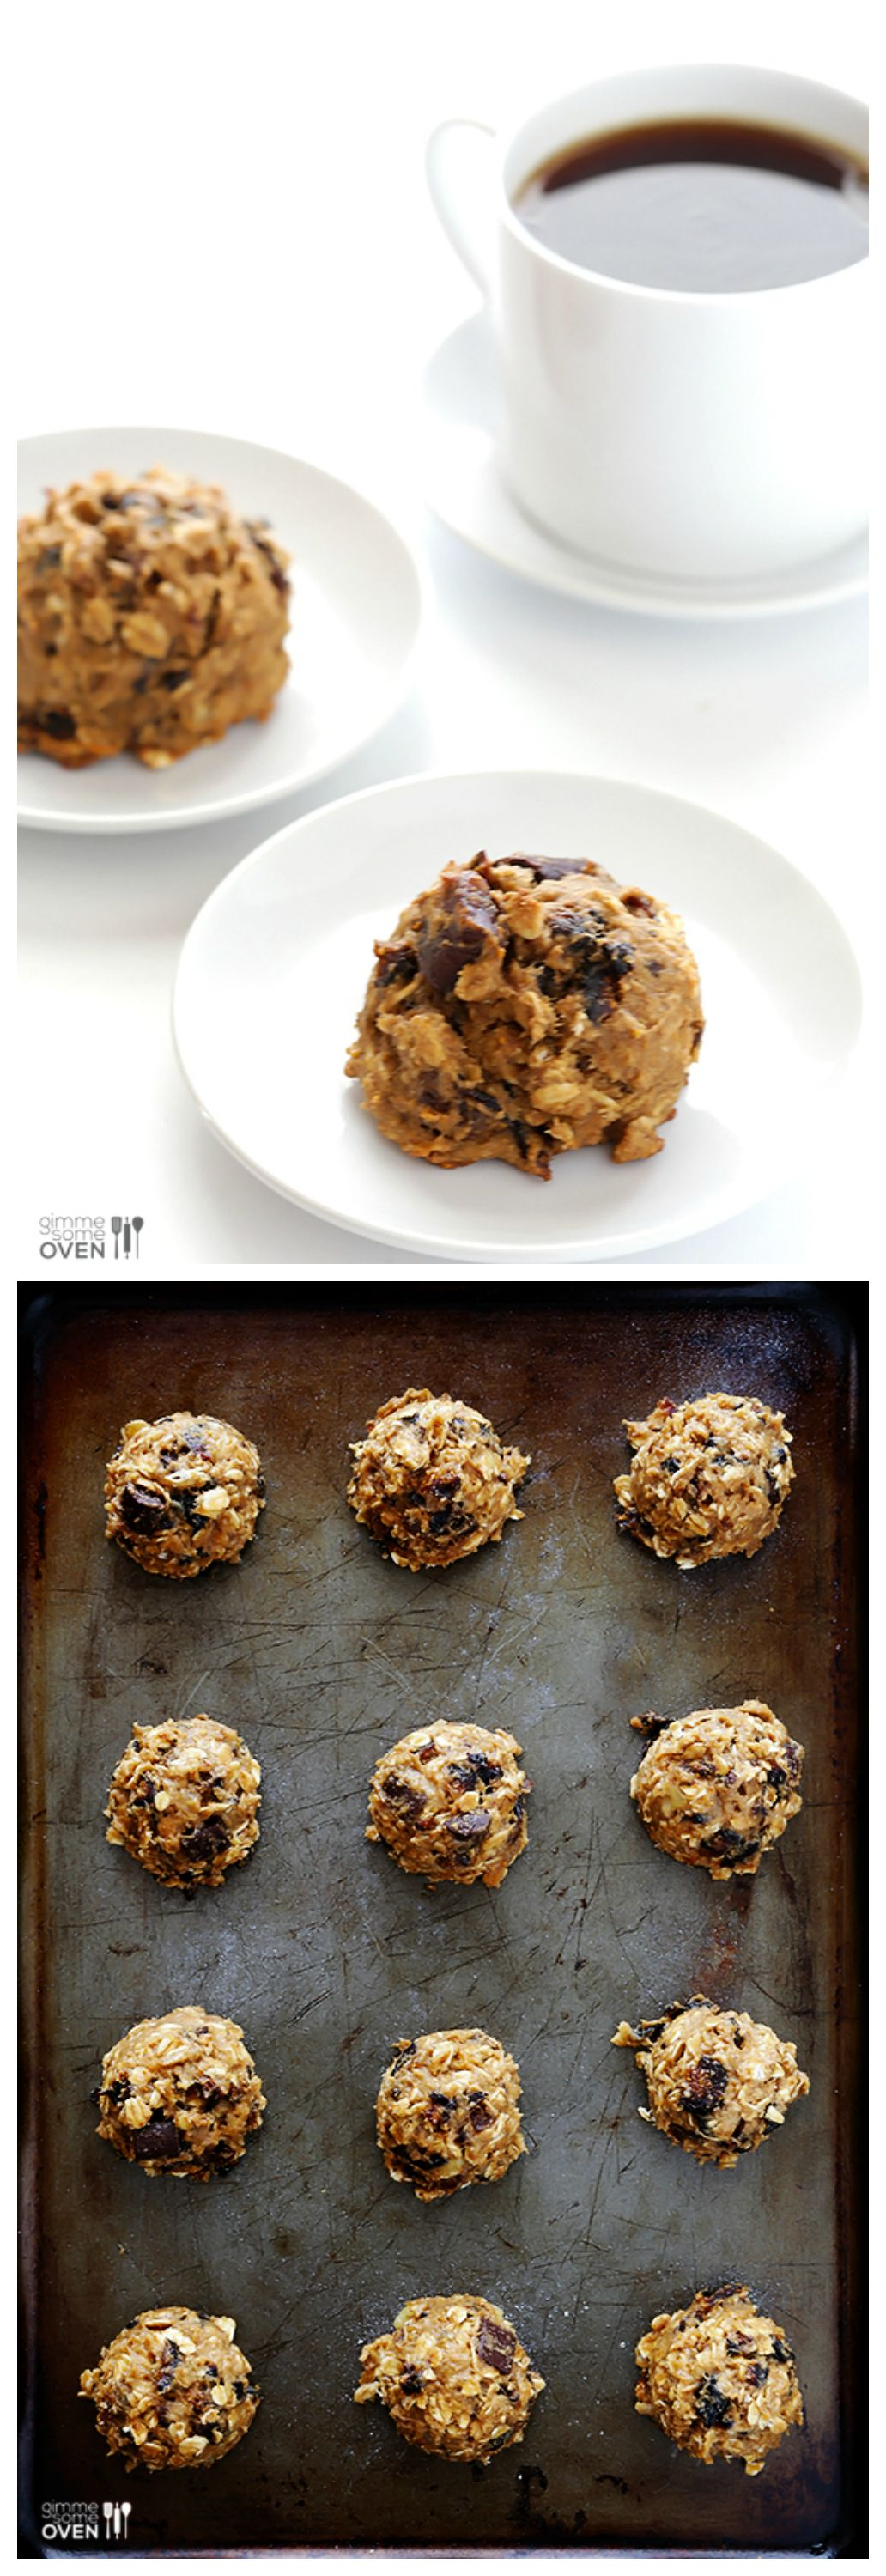 Breakfast Cookies -- made with healthier ingredients that will start your day with a delicious boost of energy | gimmesomeoven.com